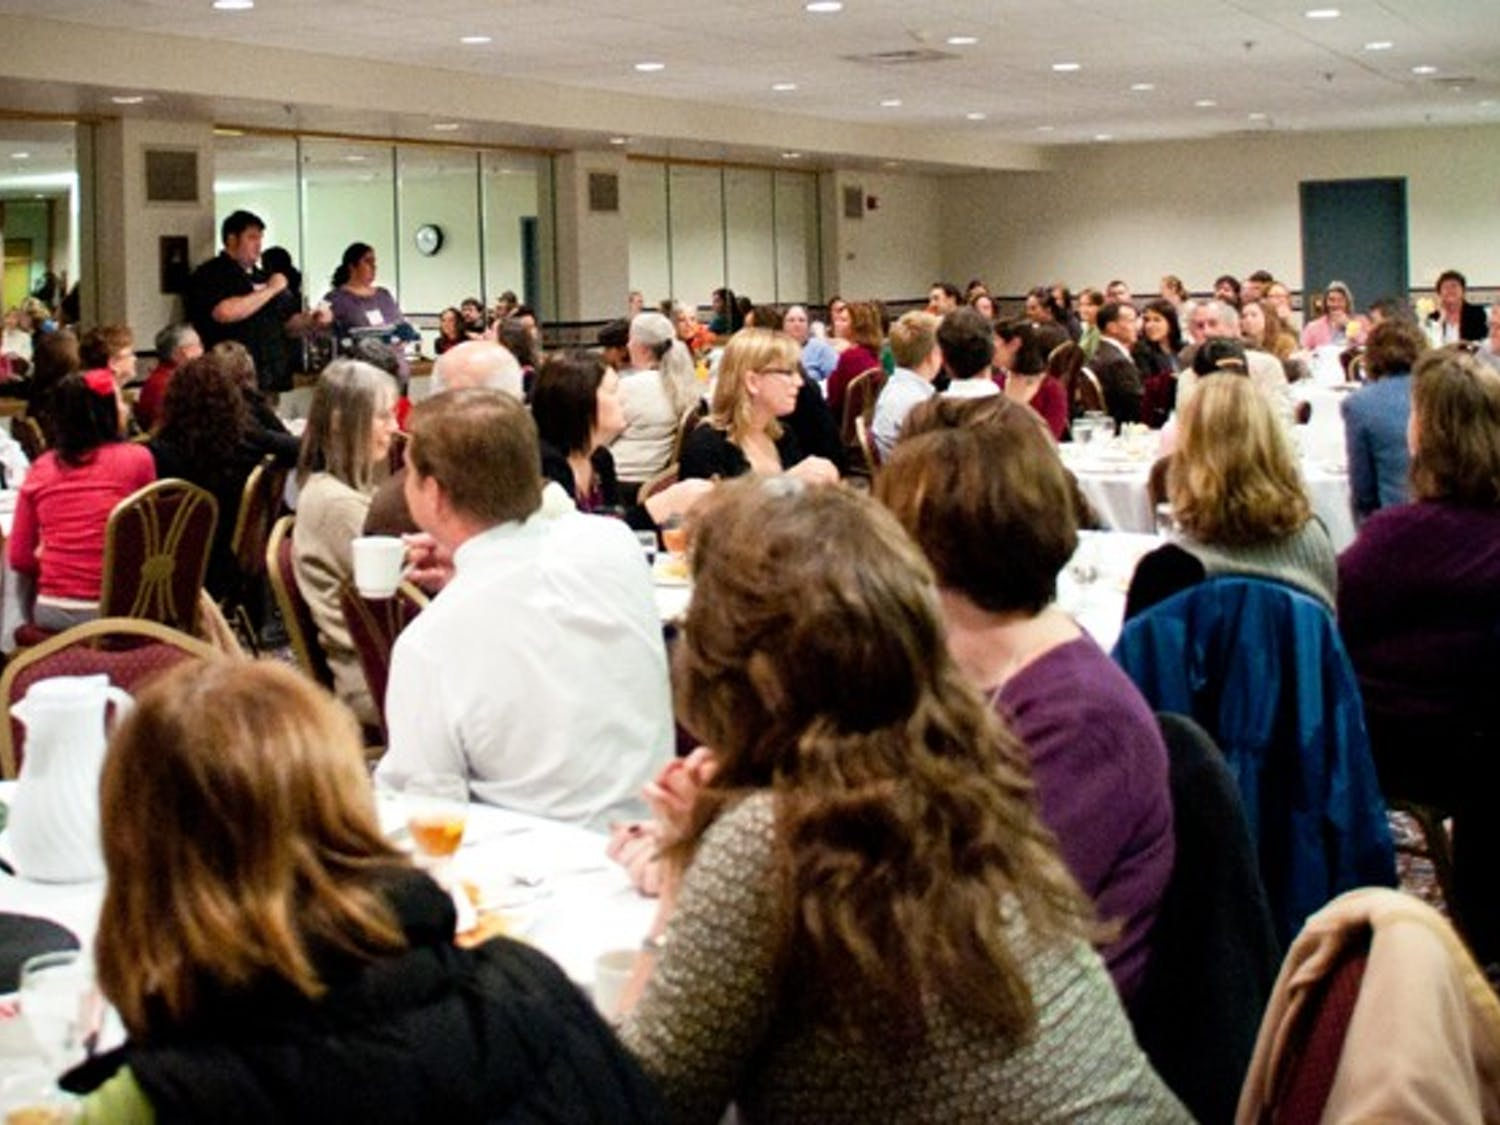 Speakers discussed ways to improve programs for students transitioning to UW-Madison at a conference Friday. Topics included ways to attract transfer students to the university.